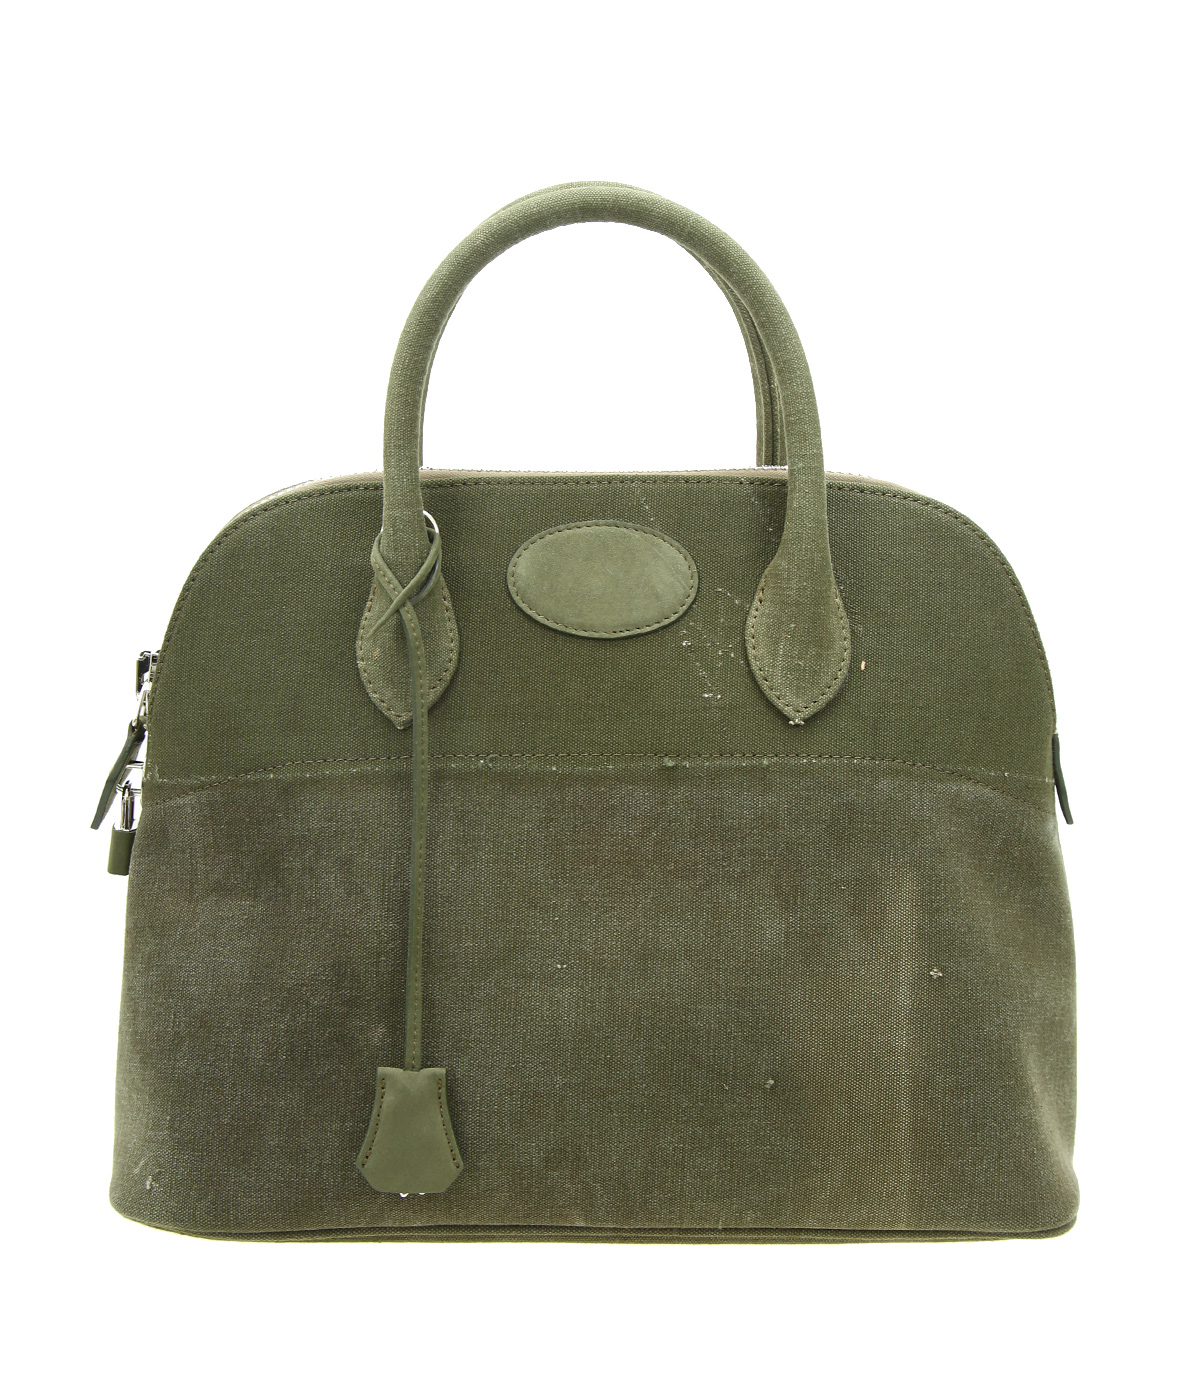 DAILY BAG(MEDIUM) -Type A-